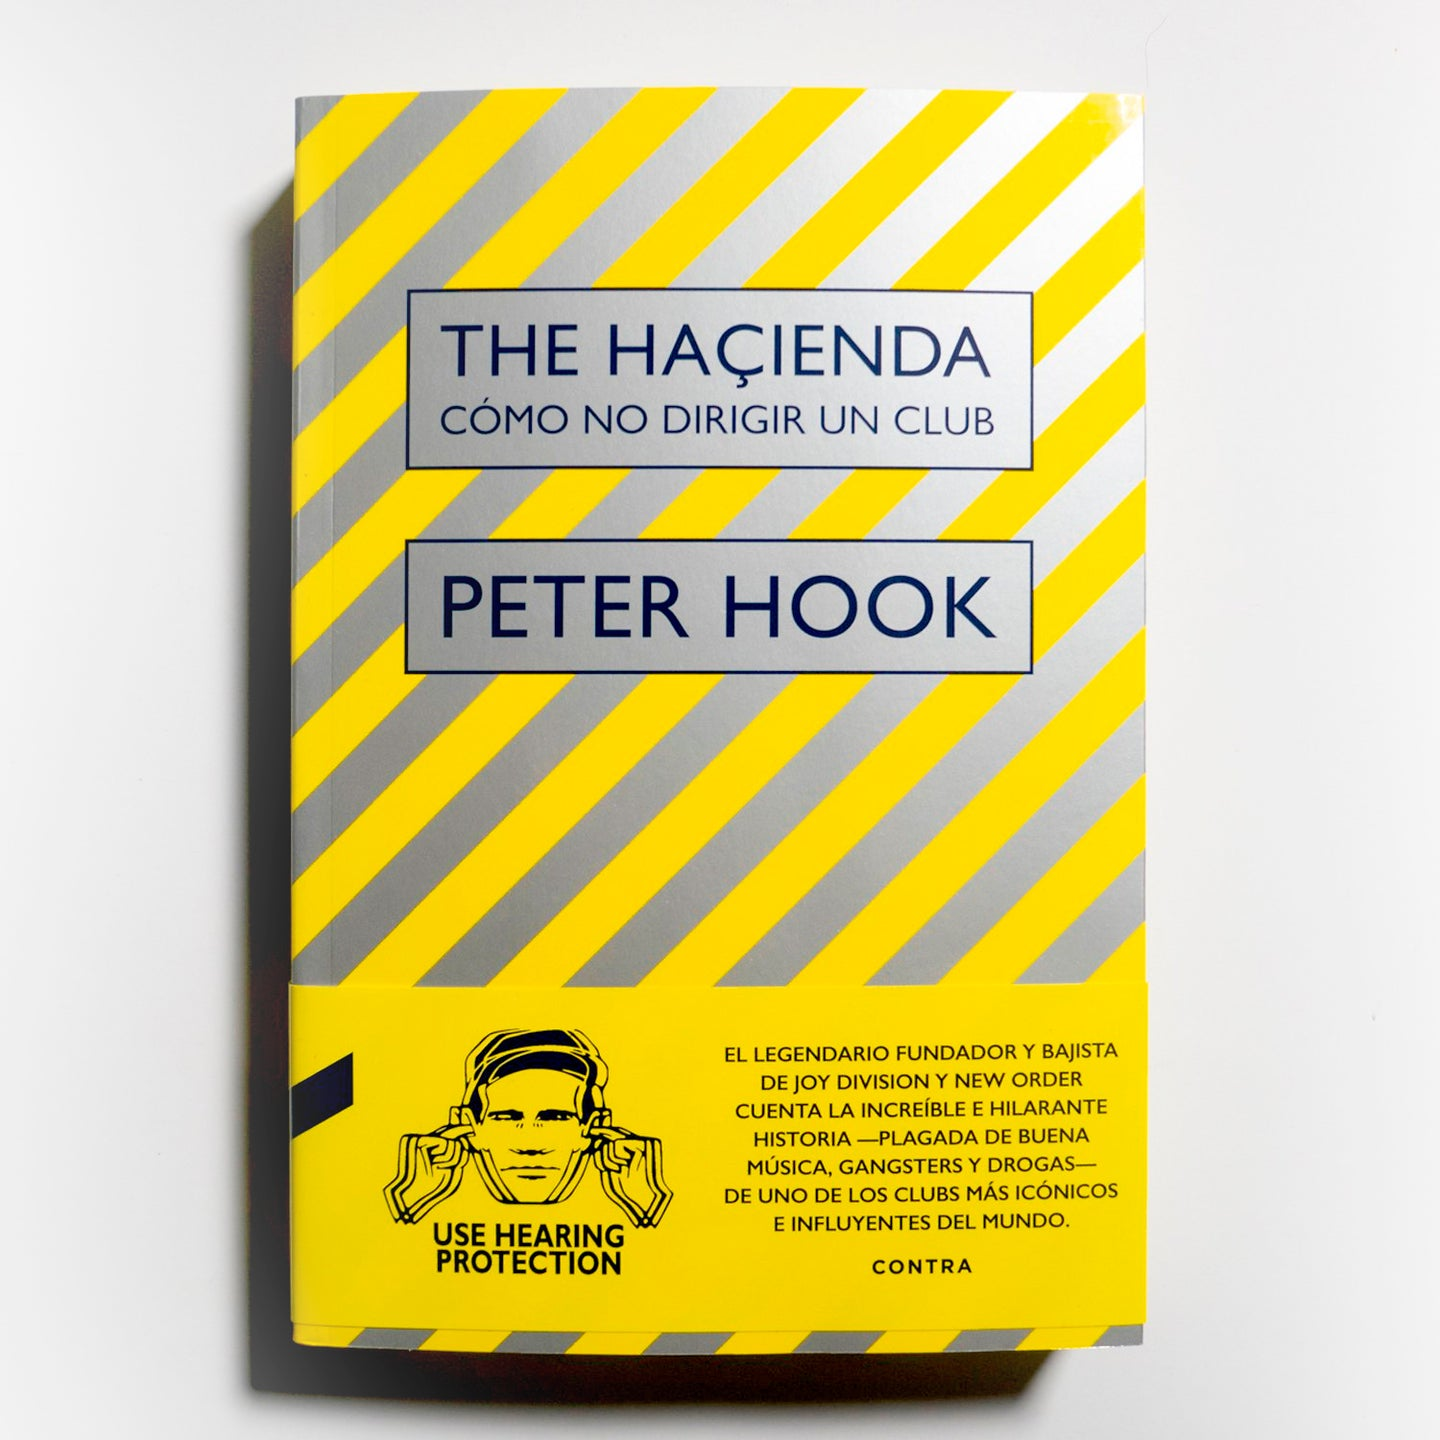 PETER HOOK | The Haçienda: cómo no dirigir un club